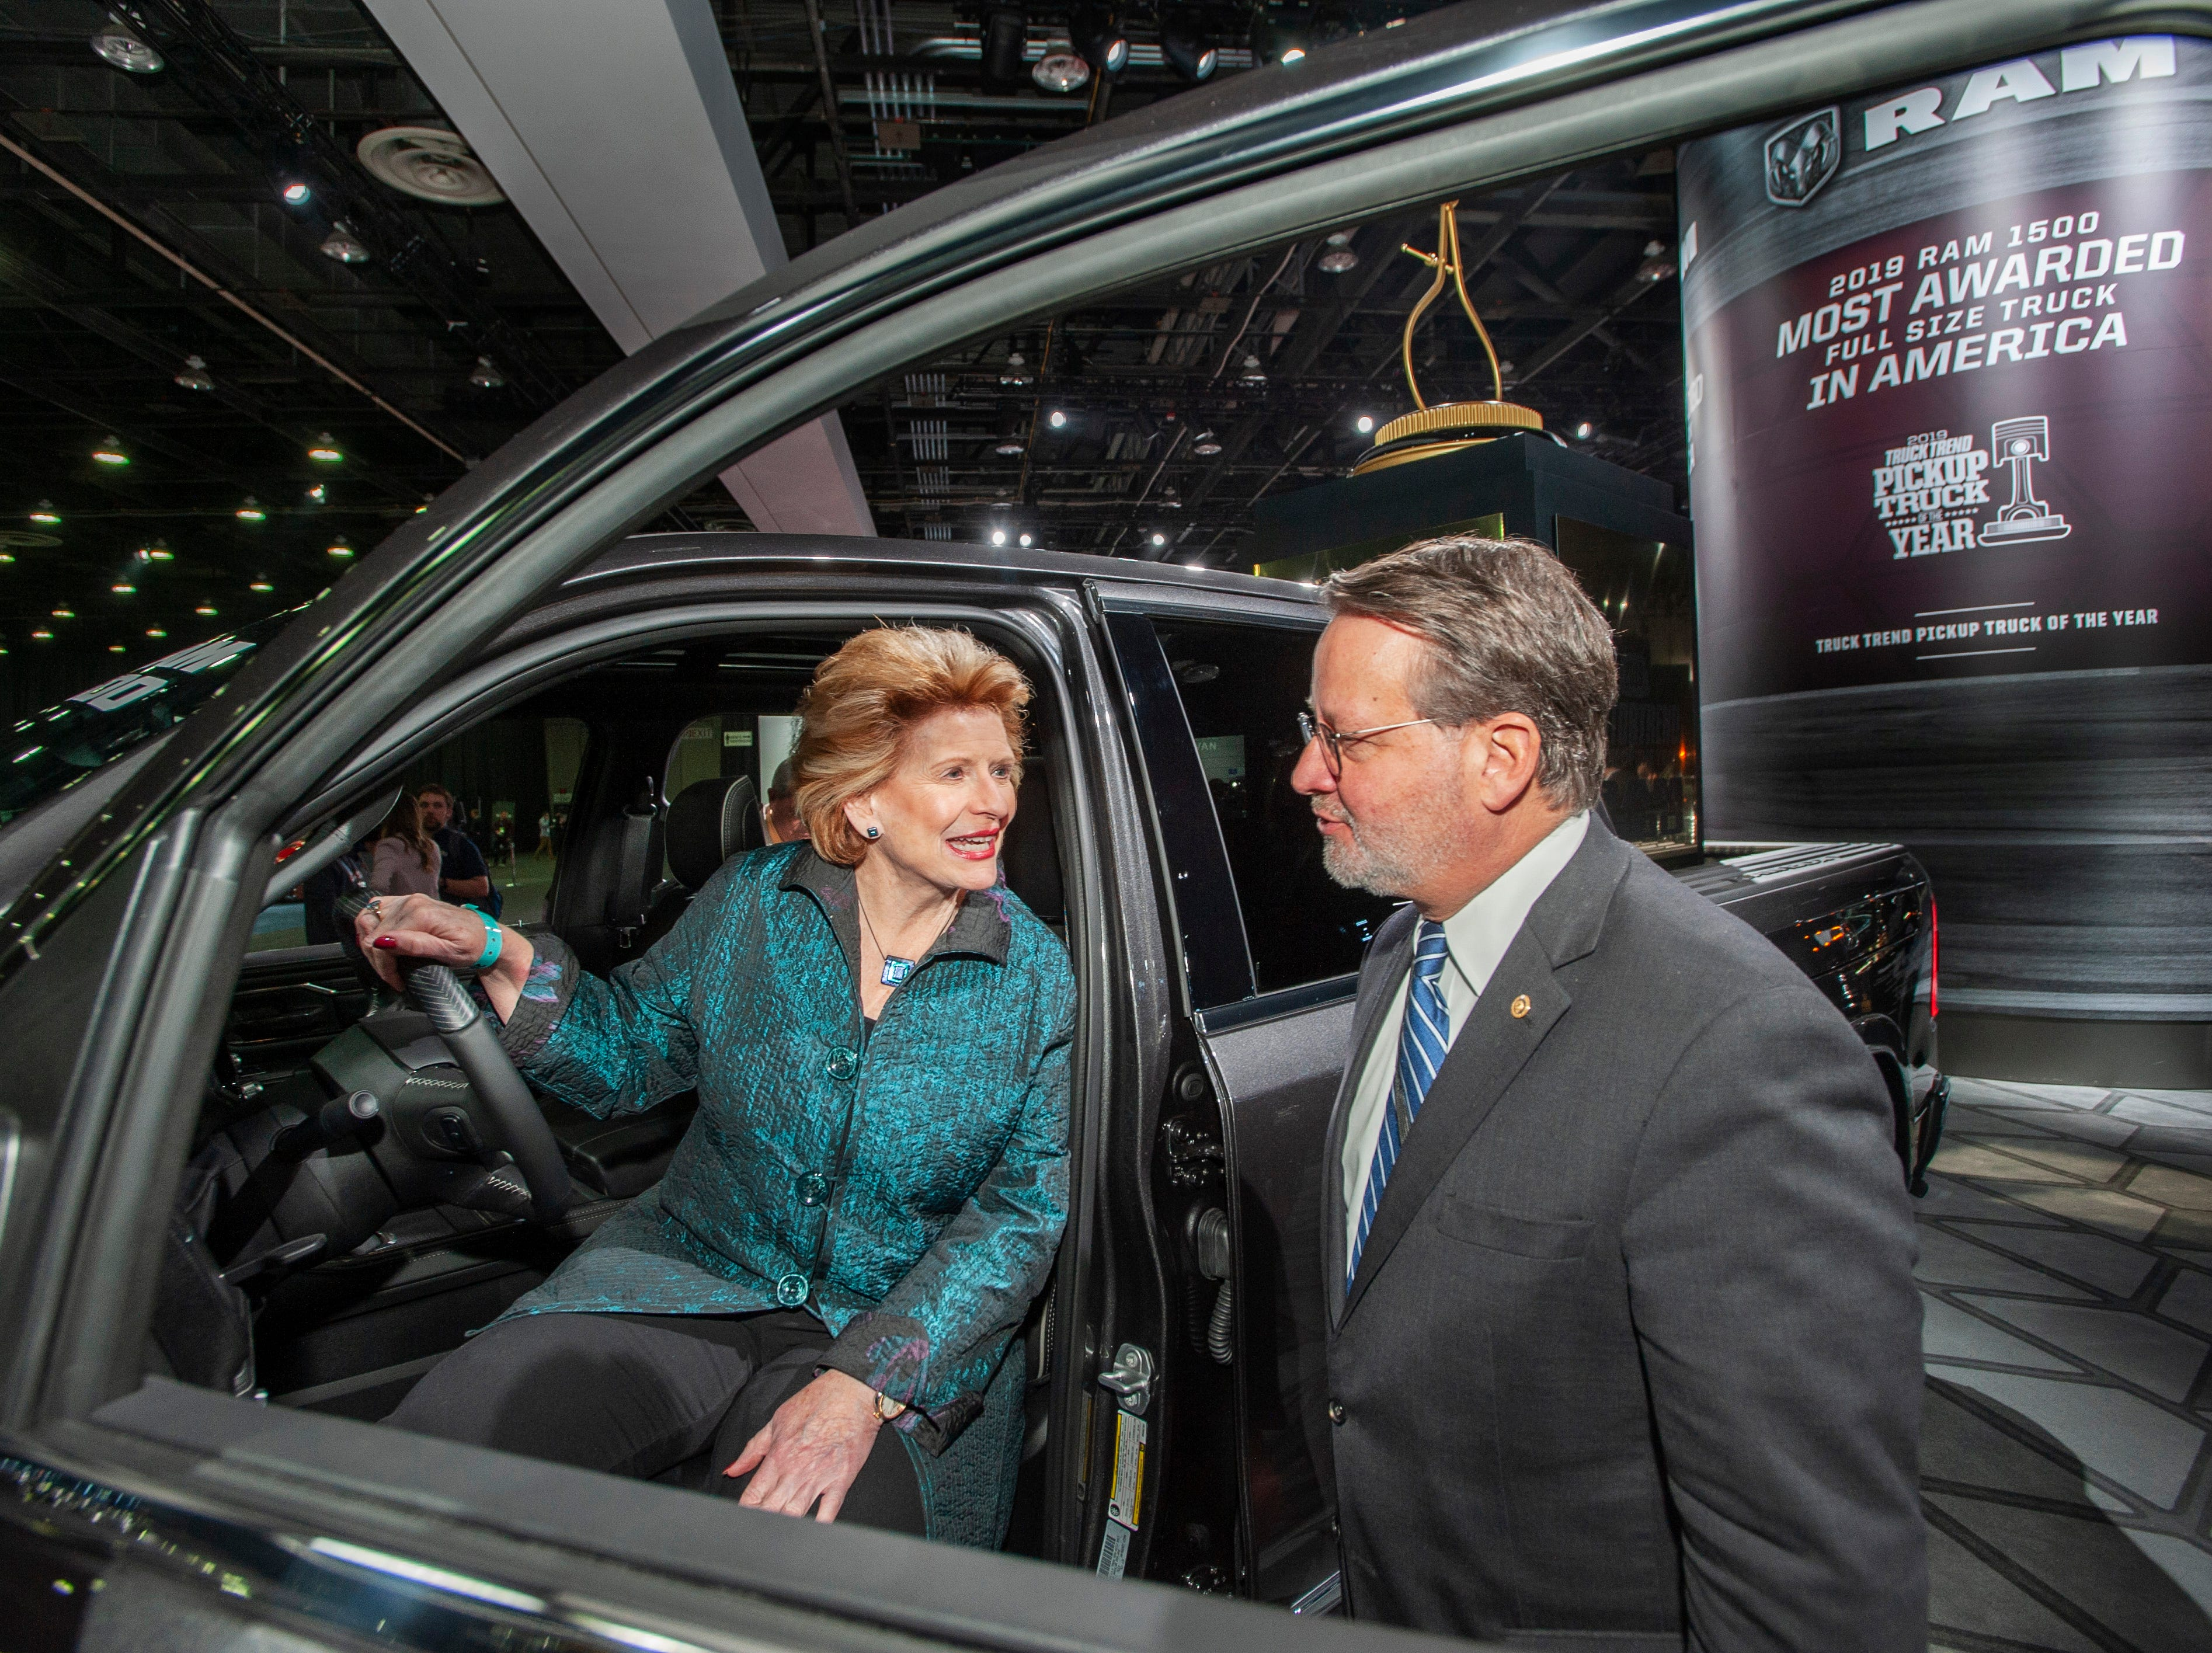 U.S. Sens. Debbie Stabenow and Gary Peters check out the Motor Trend 2019 Truck of the Year, the Ram 1500 Limited, while touring the show floor at the North American International Auto Show in Detroit on Monday, Jan. 14, 2019.